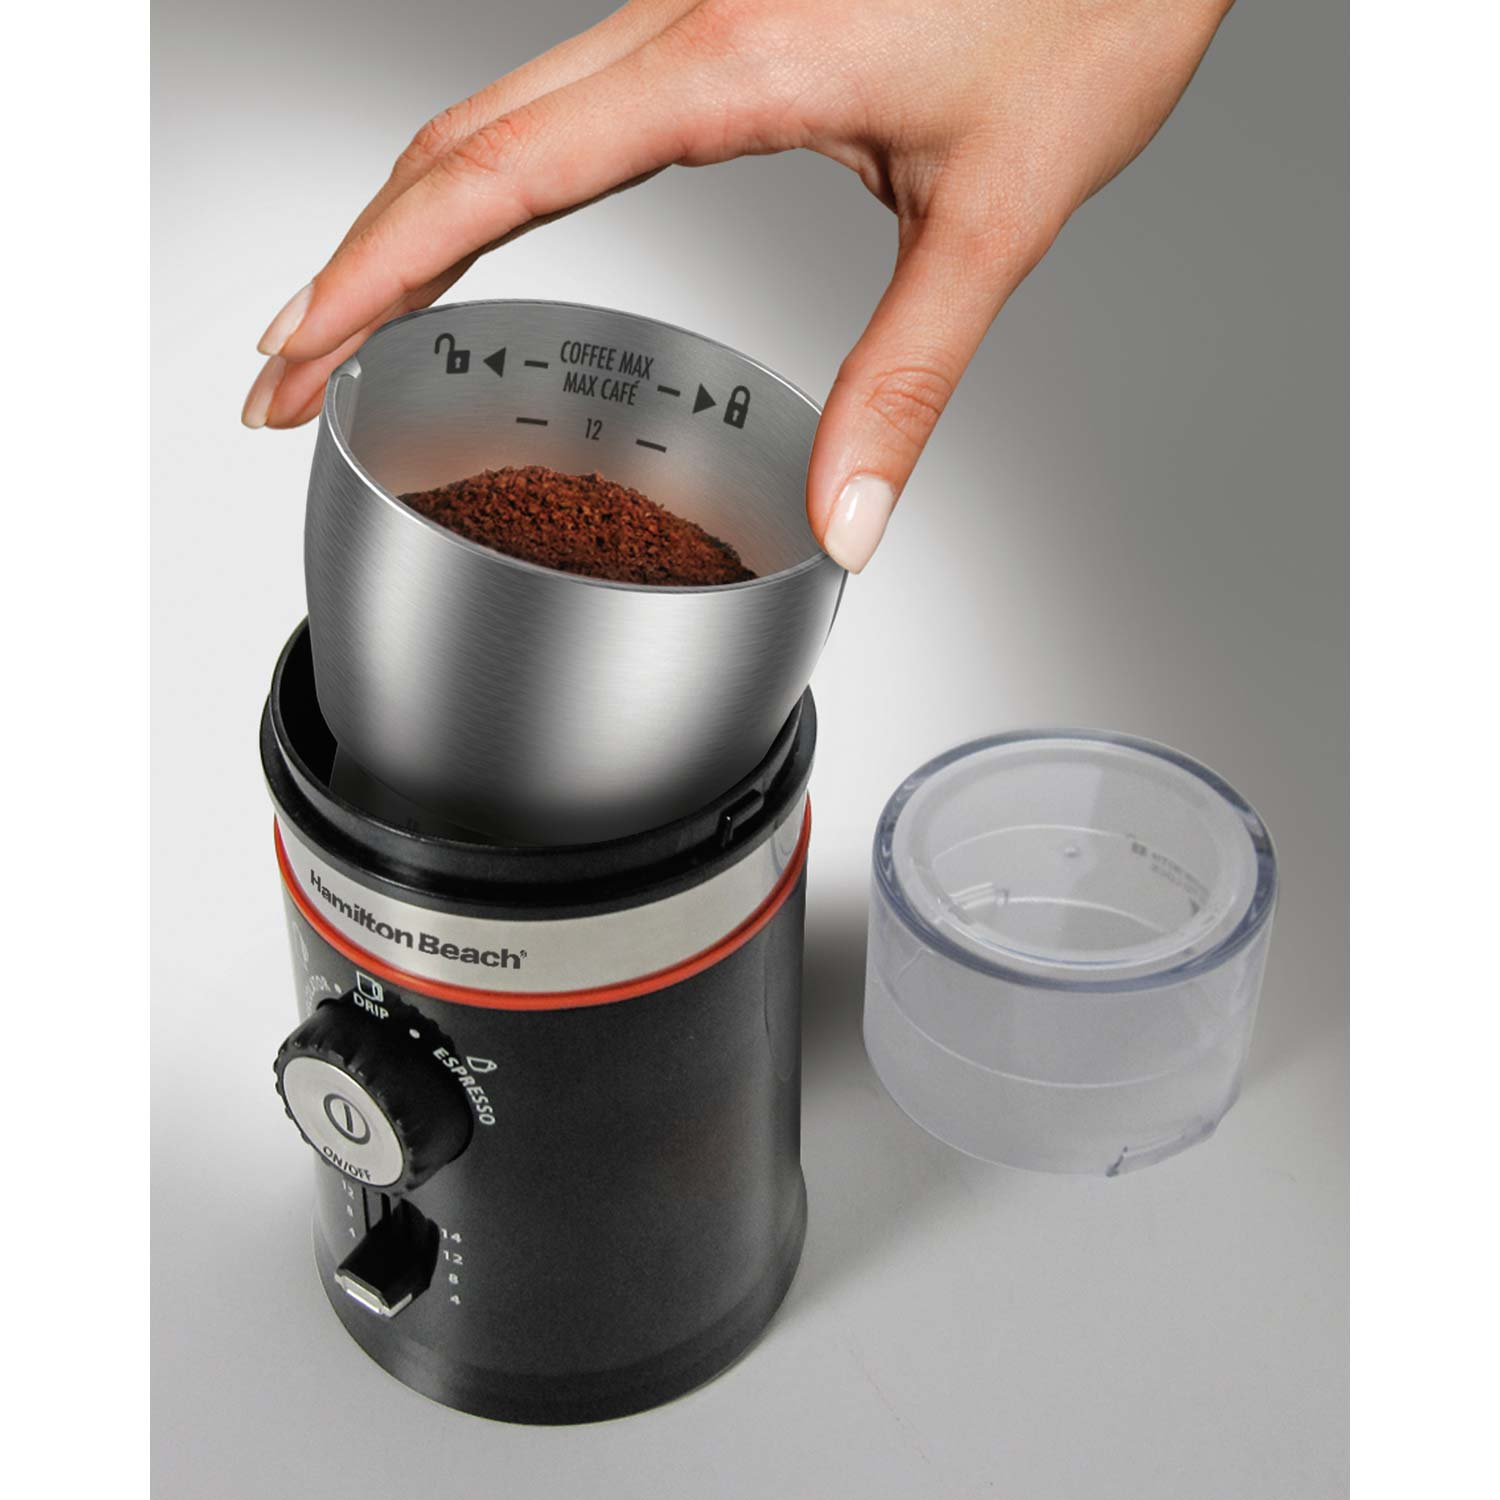 The Custom Grind Coffee Grinder features a removable stainless steel chamber for mess-free pouring and easy cleaning.